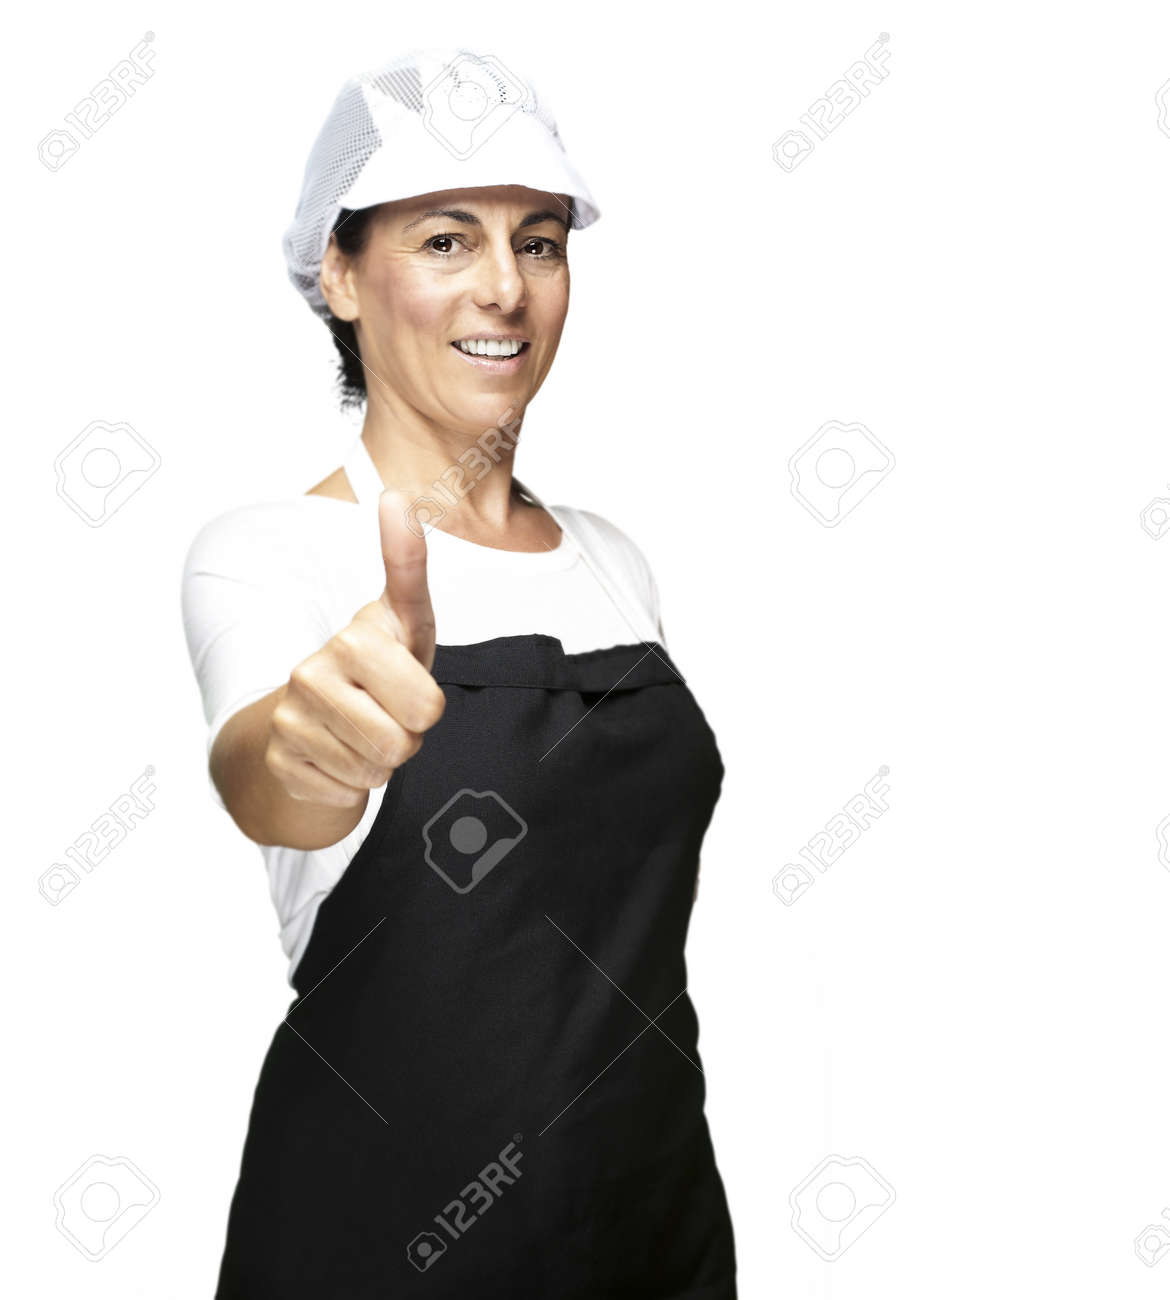 White apron and hat - Stock Photo Portrait Of Cook Wearing Apron And Mesh Top Hat Doing Okey Symbol Against White Background